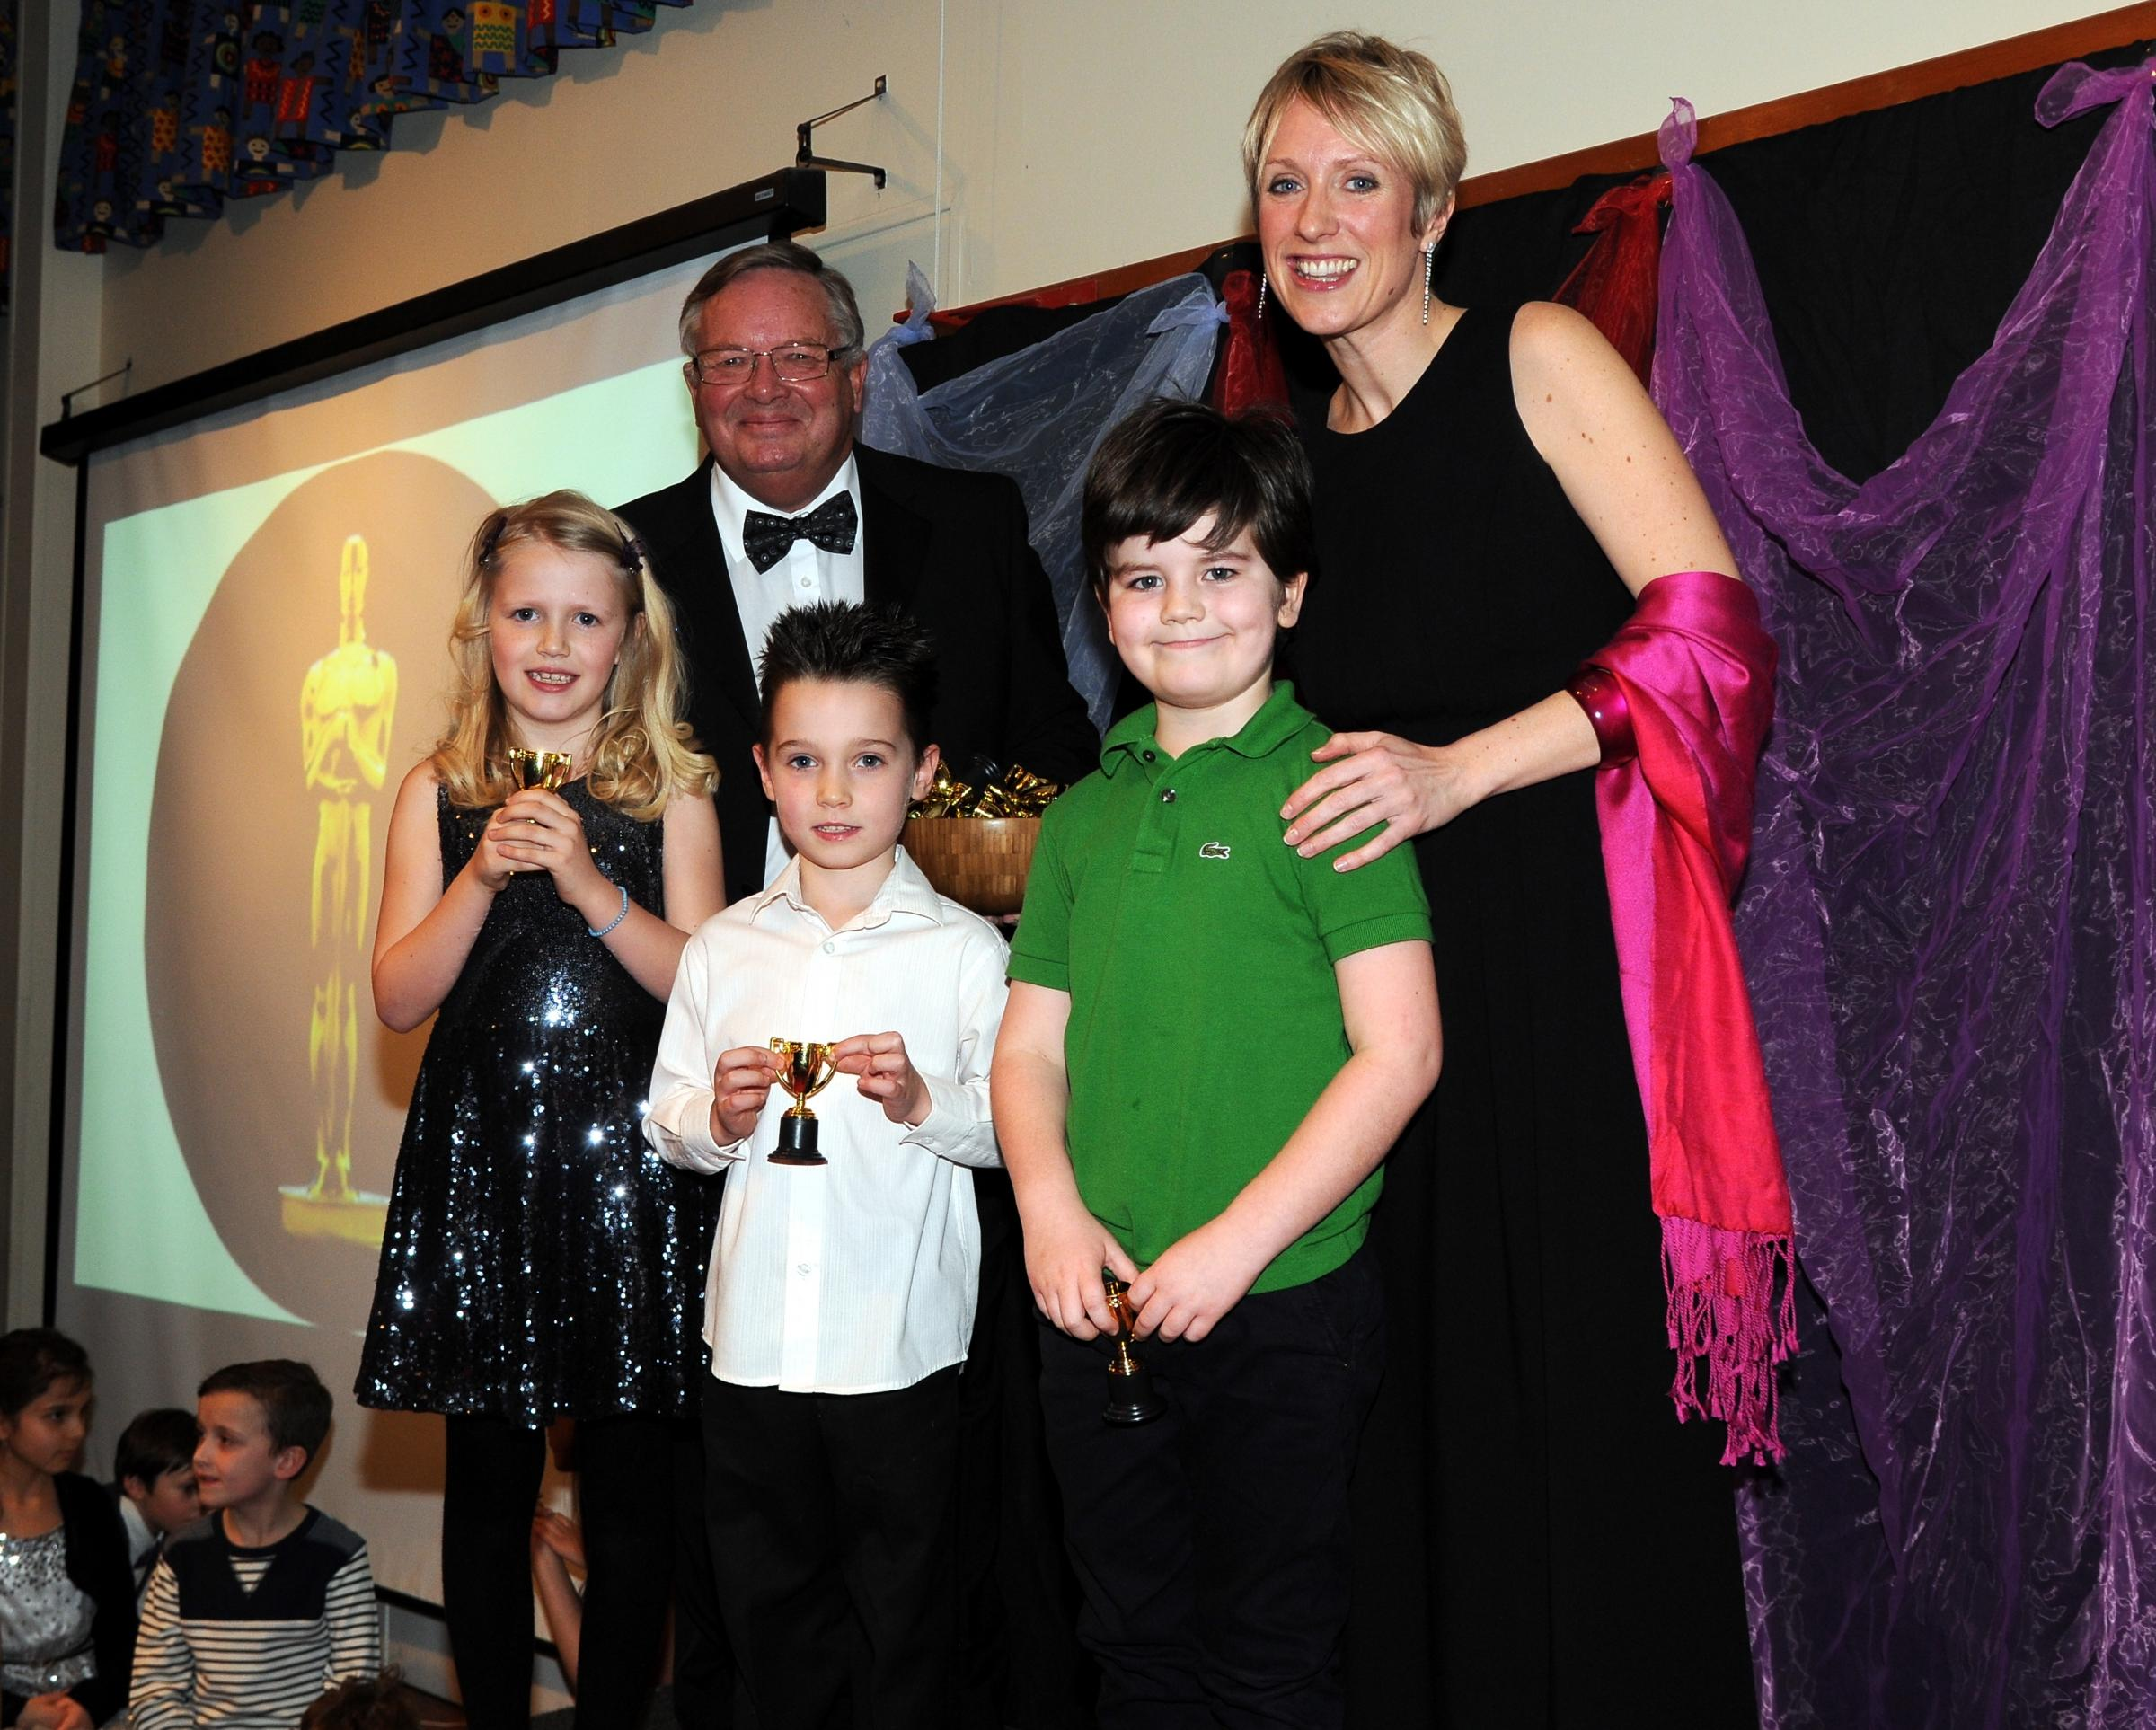 Chairman of the governors Peter Mitchener and headteacher Libby Wyatt, with Year 2 pupils Lucy, Charlie and Gene